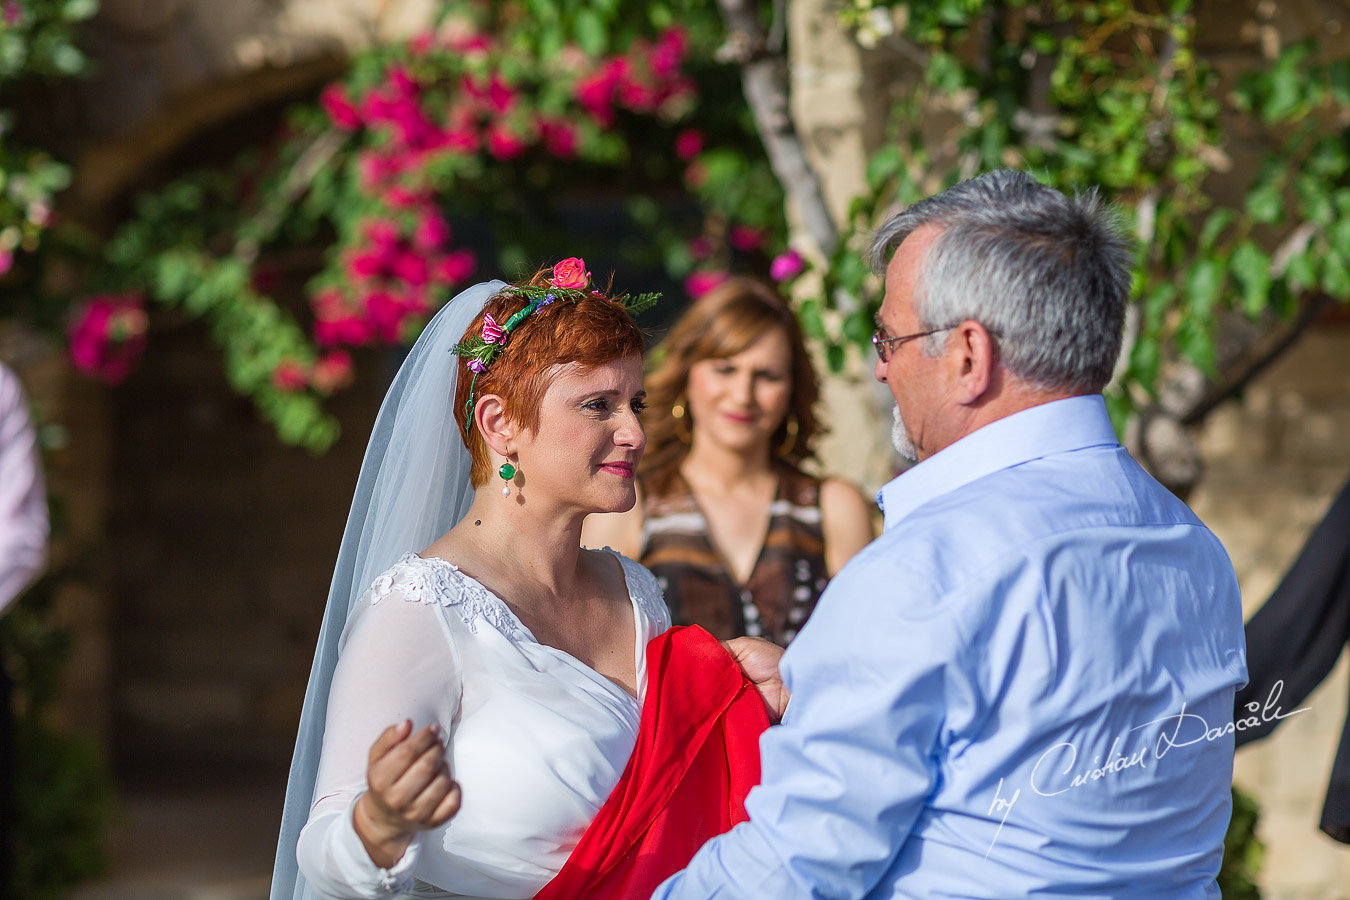 Red scarf traditions at Traditional Cyprus Wedding in Tochni, Larnaca.